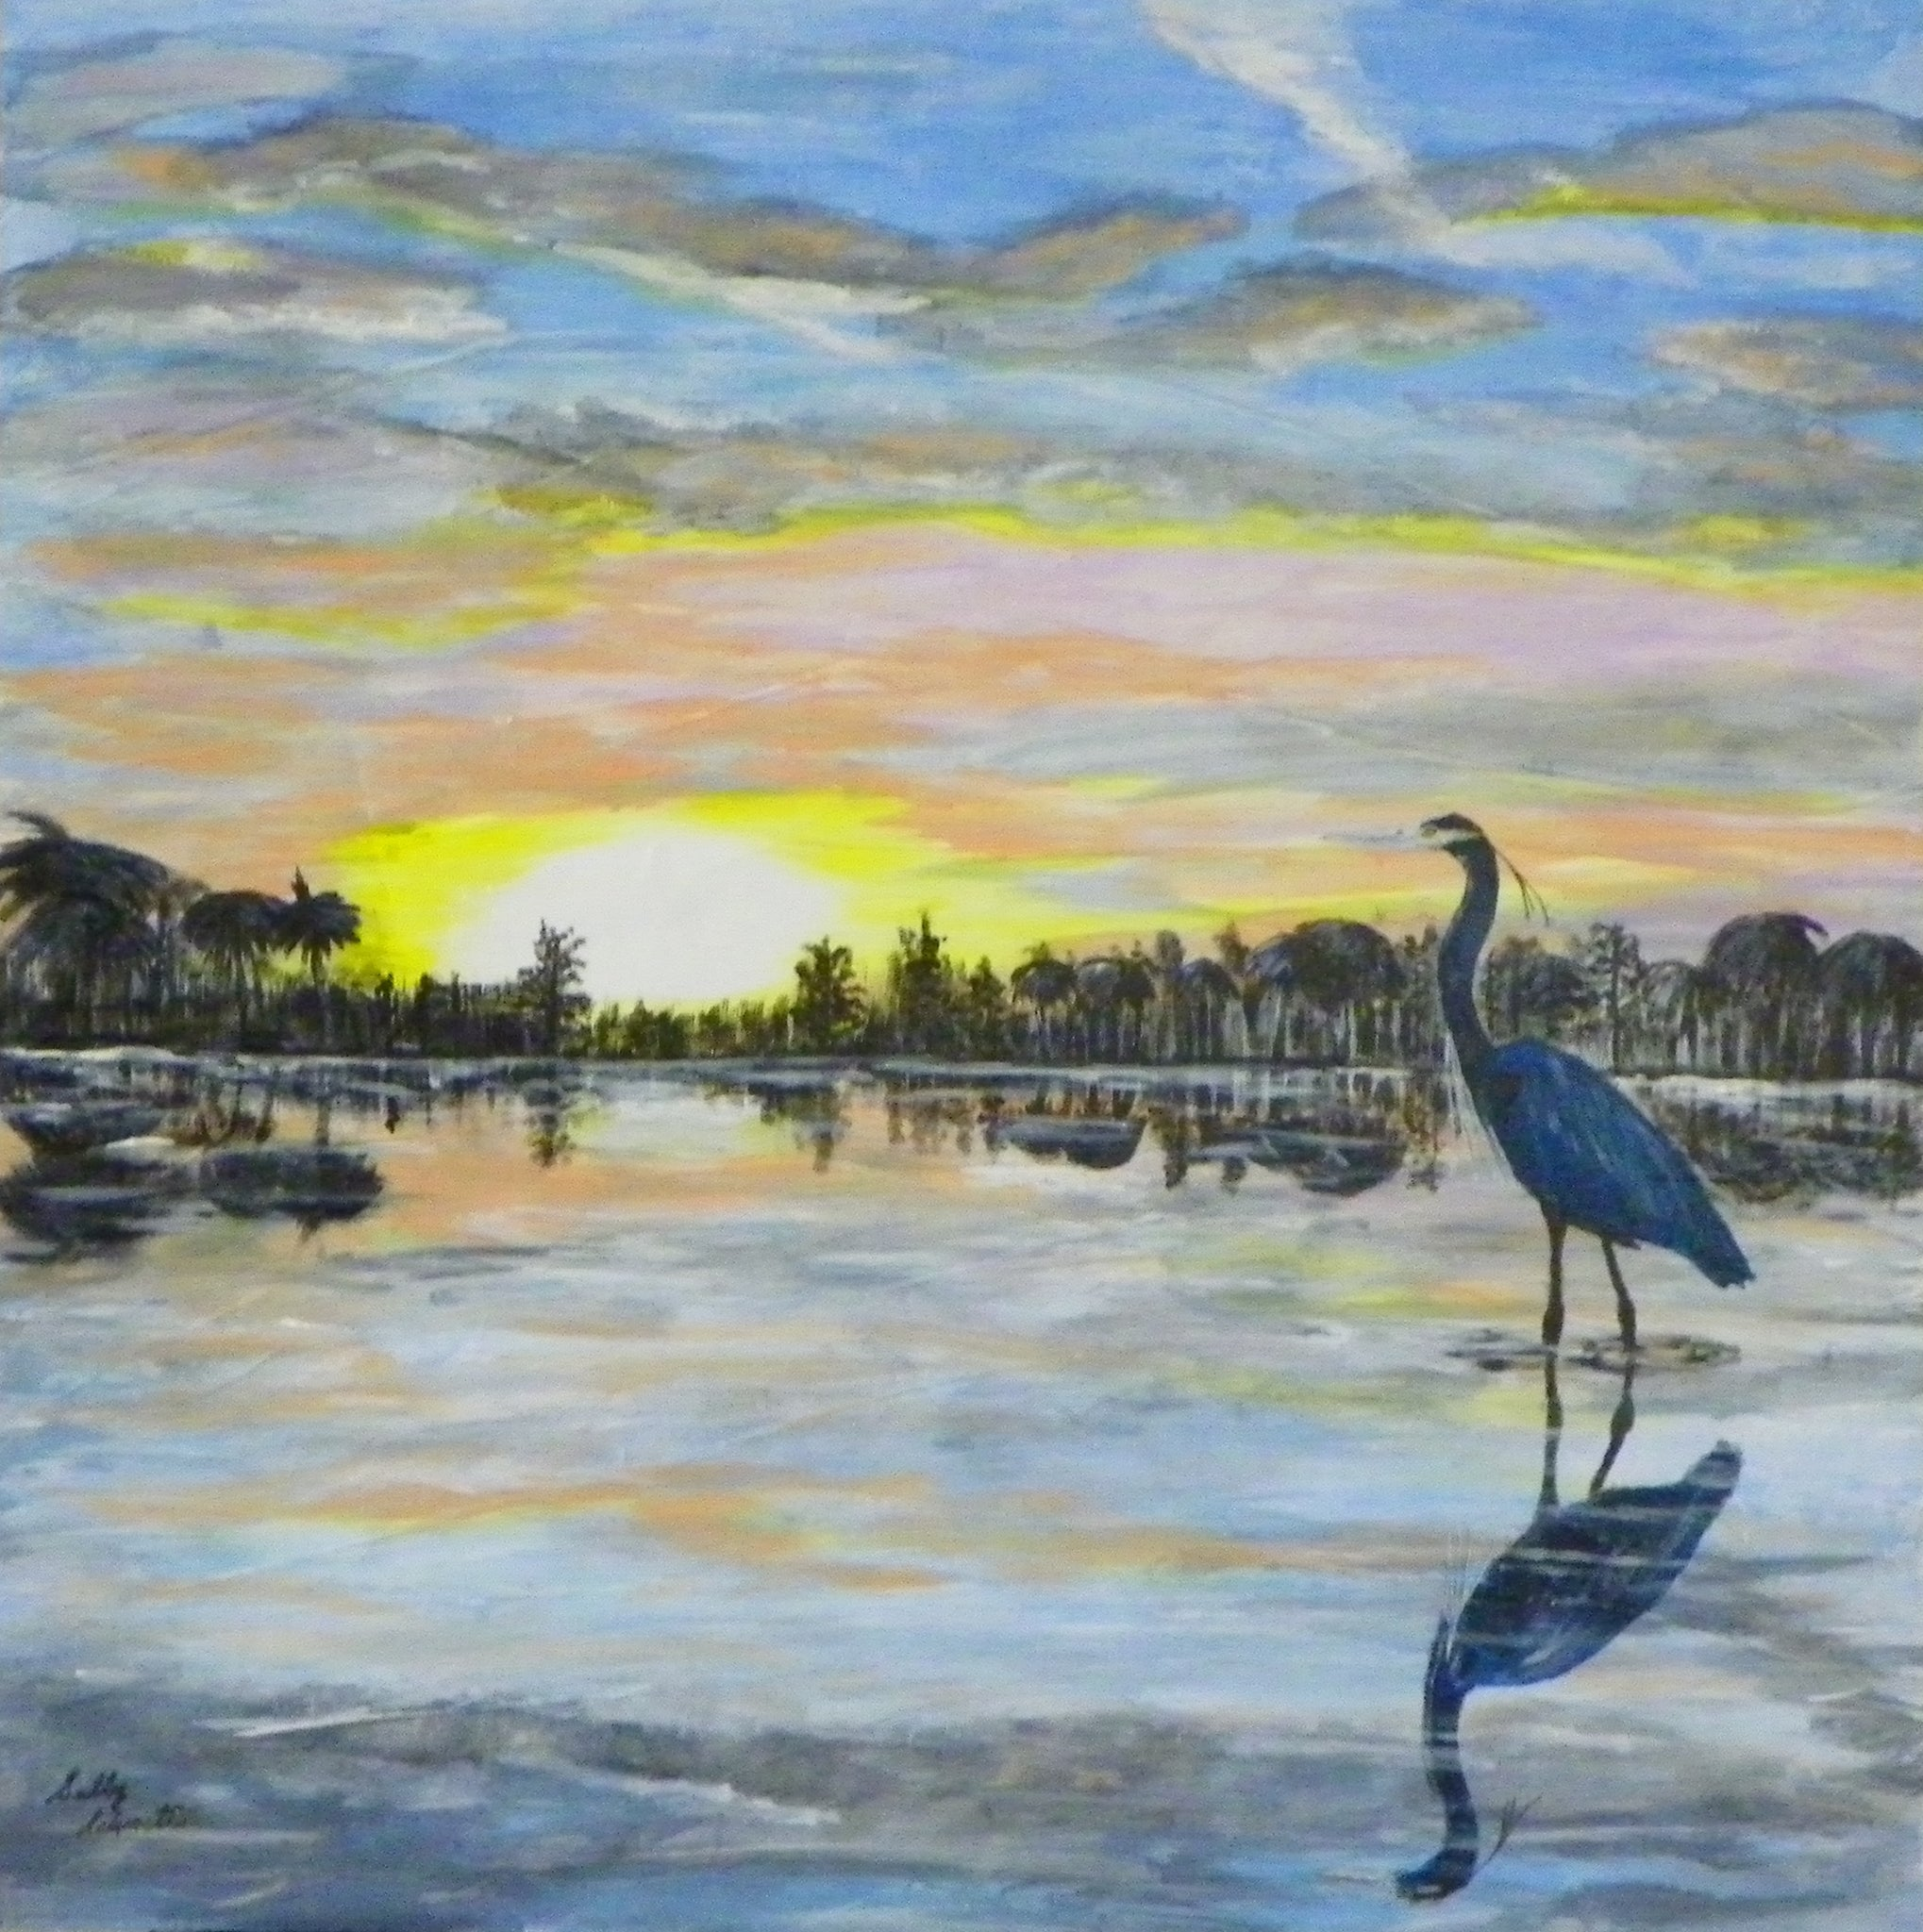 Calm Sunrise (blue heron)